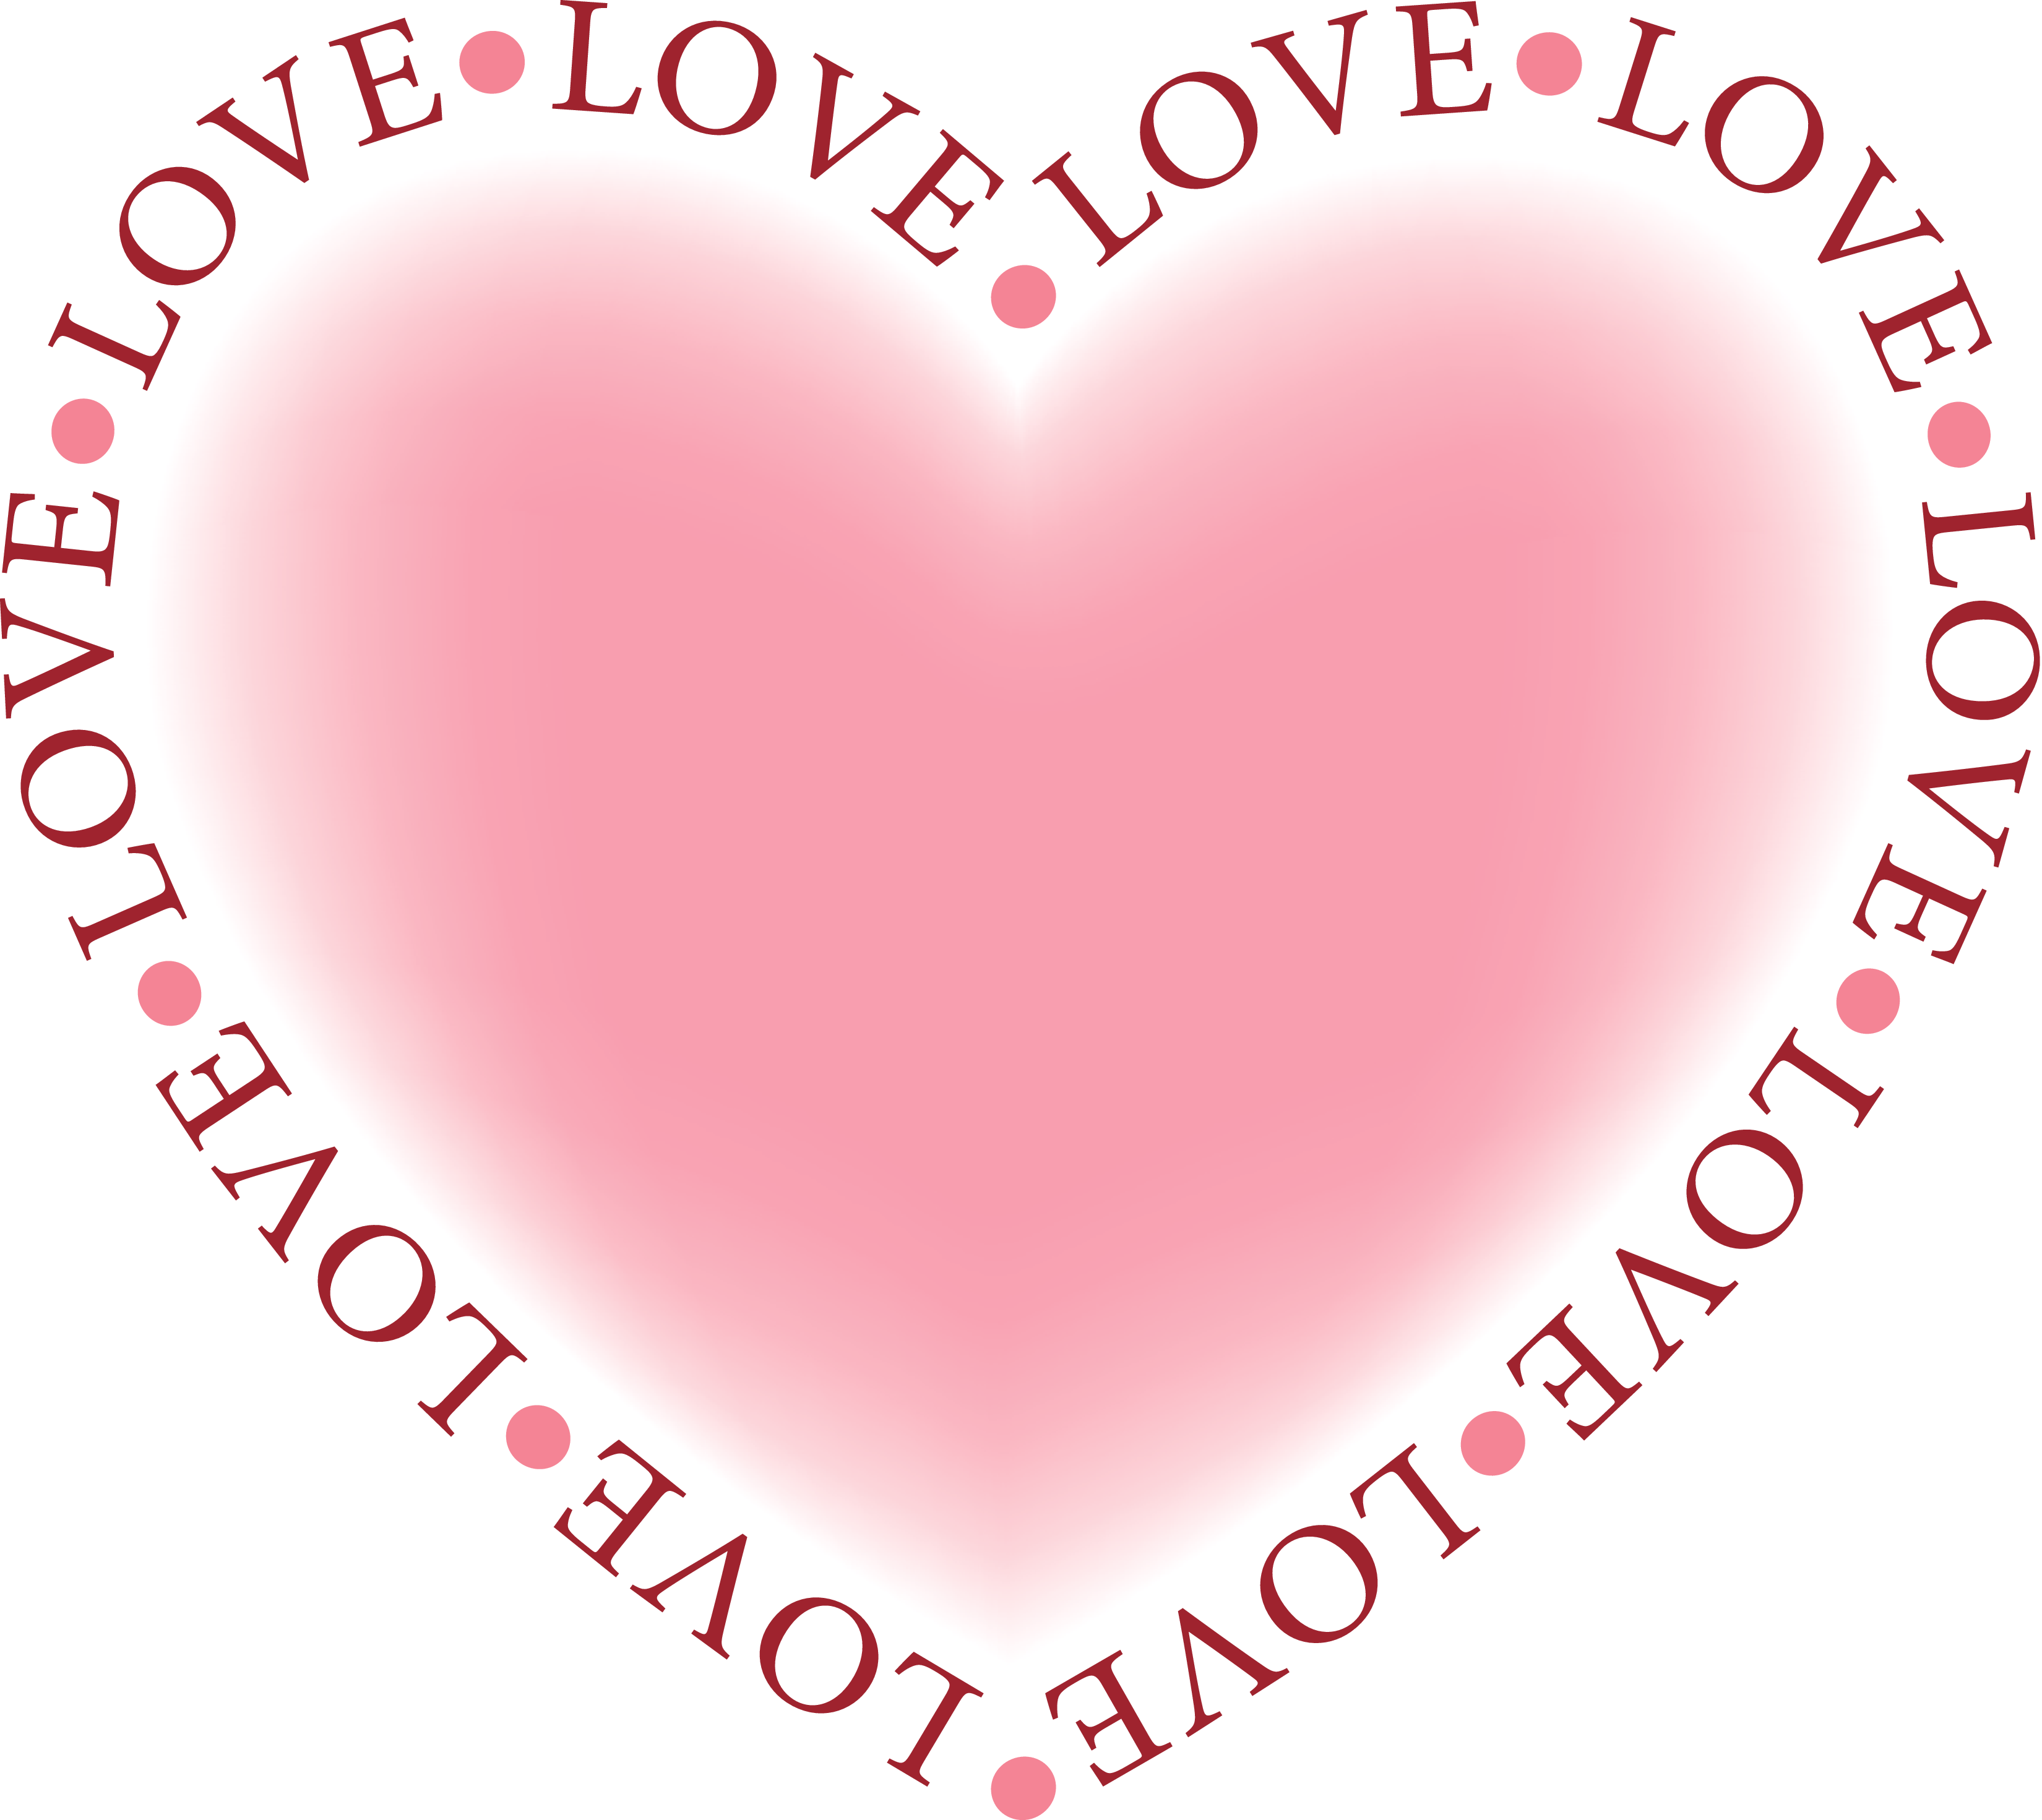 pink heart png displaying 14 images for pink heart png toolbar creatorPink Heart Outline Png